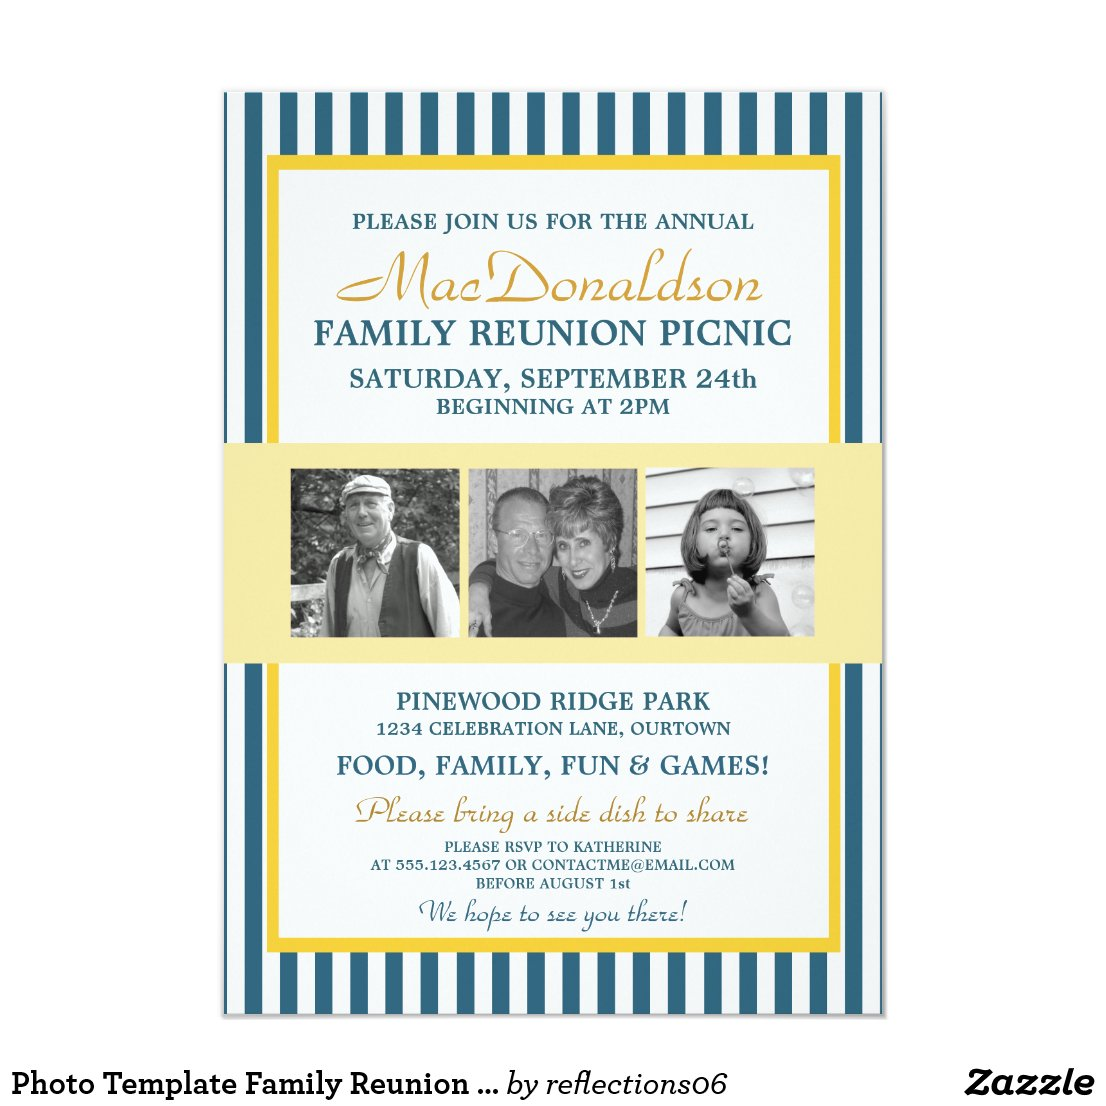 Photo Template Family Reunion Invitations